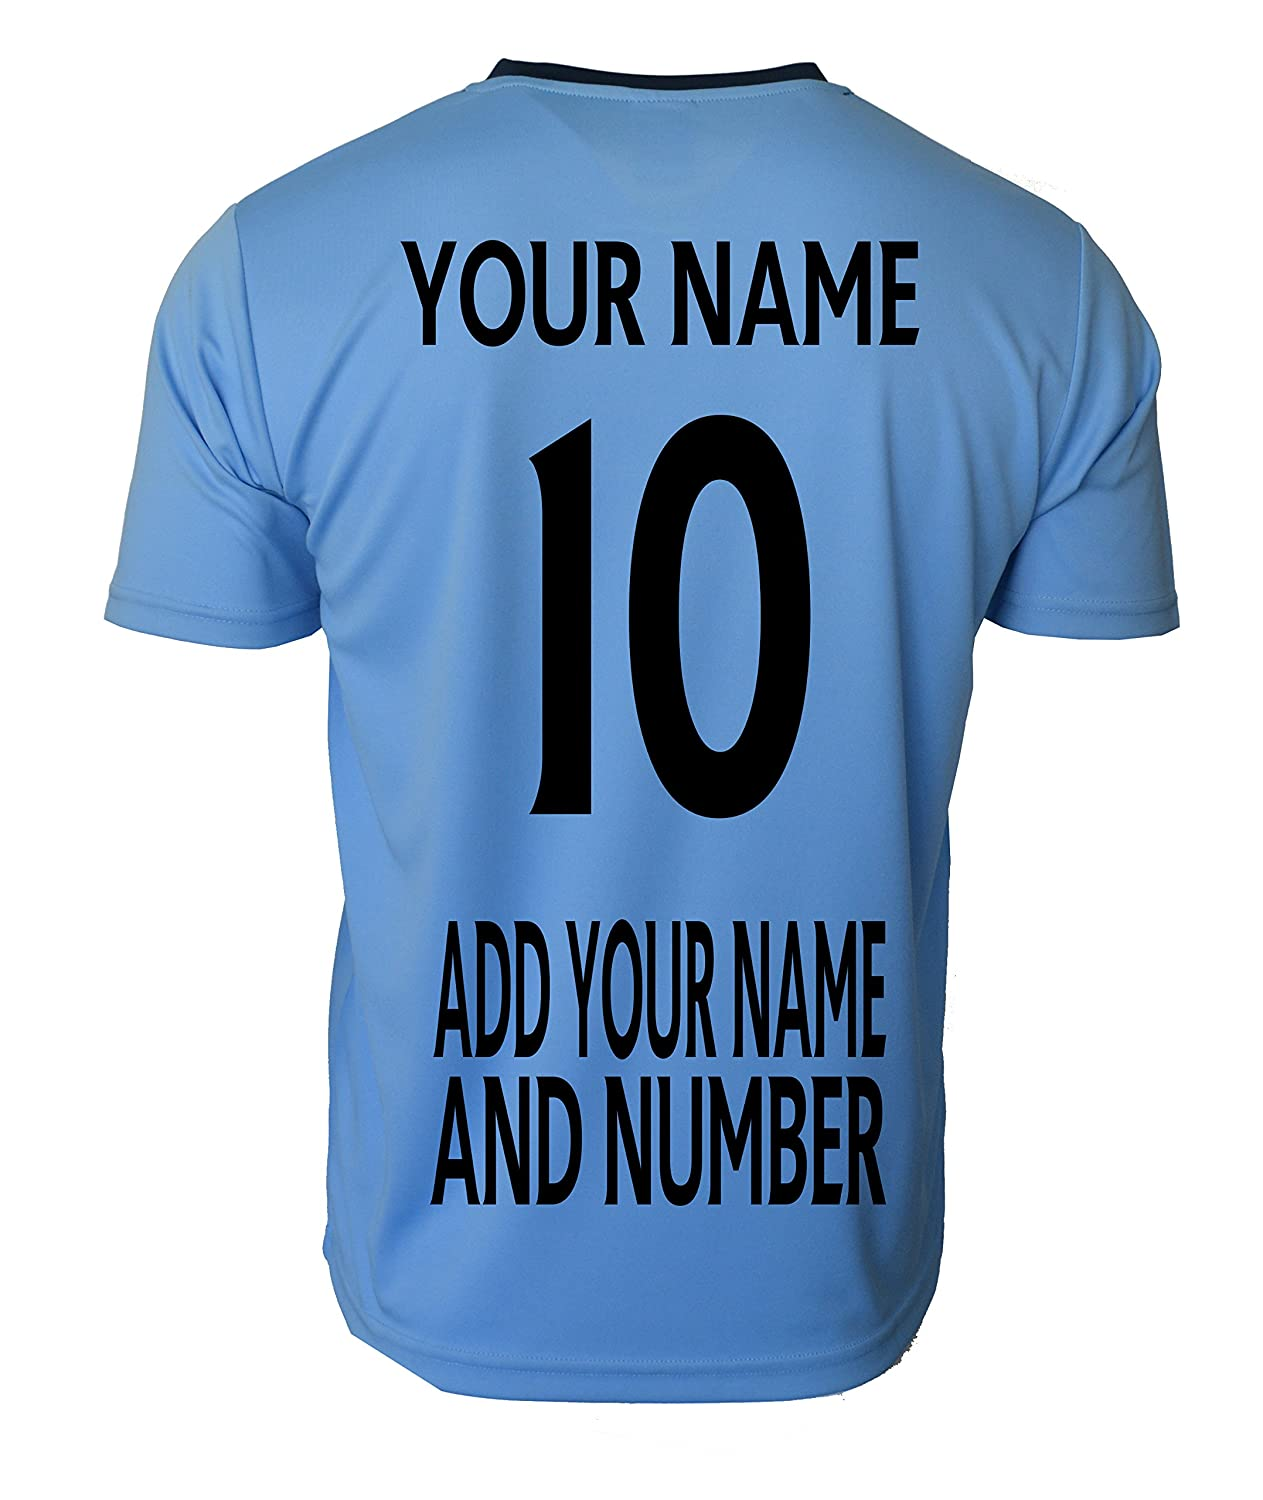 3220f506e7c Amazon.com   Manchester City Soccer Jersey Men s Adult Training Custom Name  and Number   Sports   Outdoors